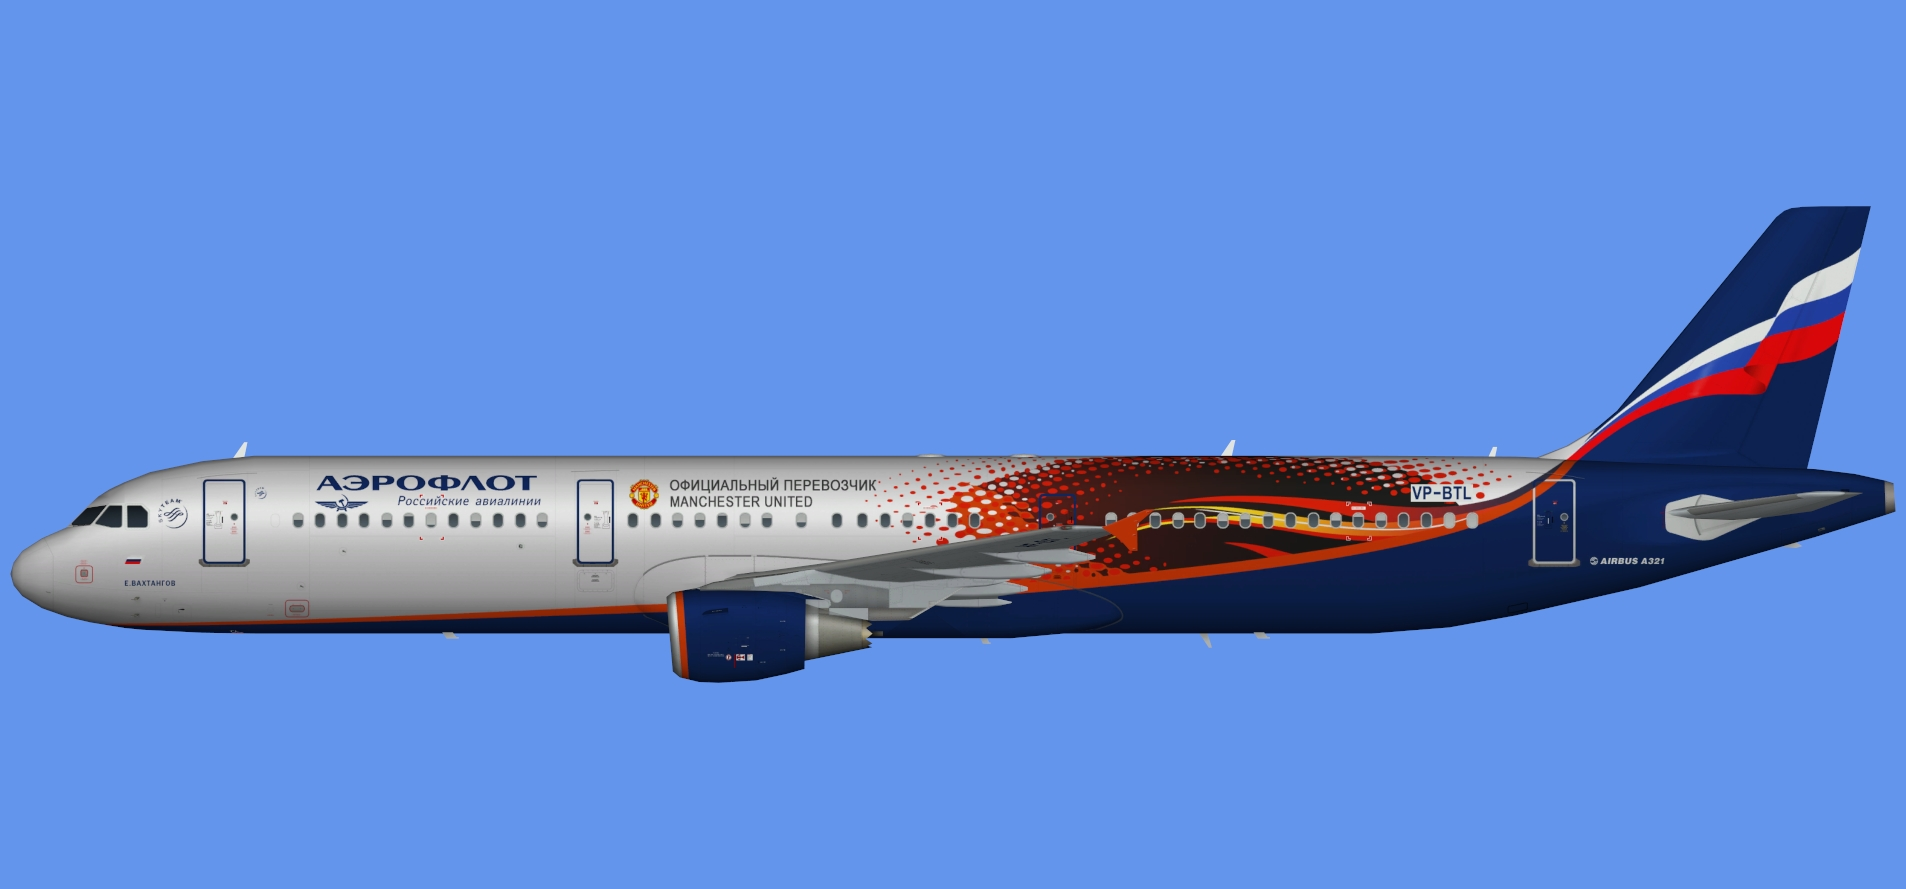 Aeroflot A321 Man United